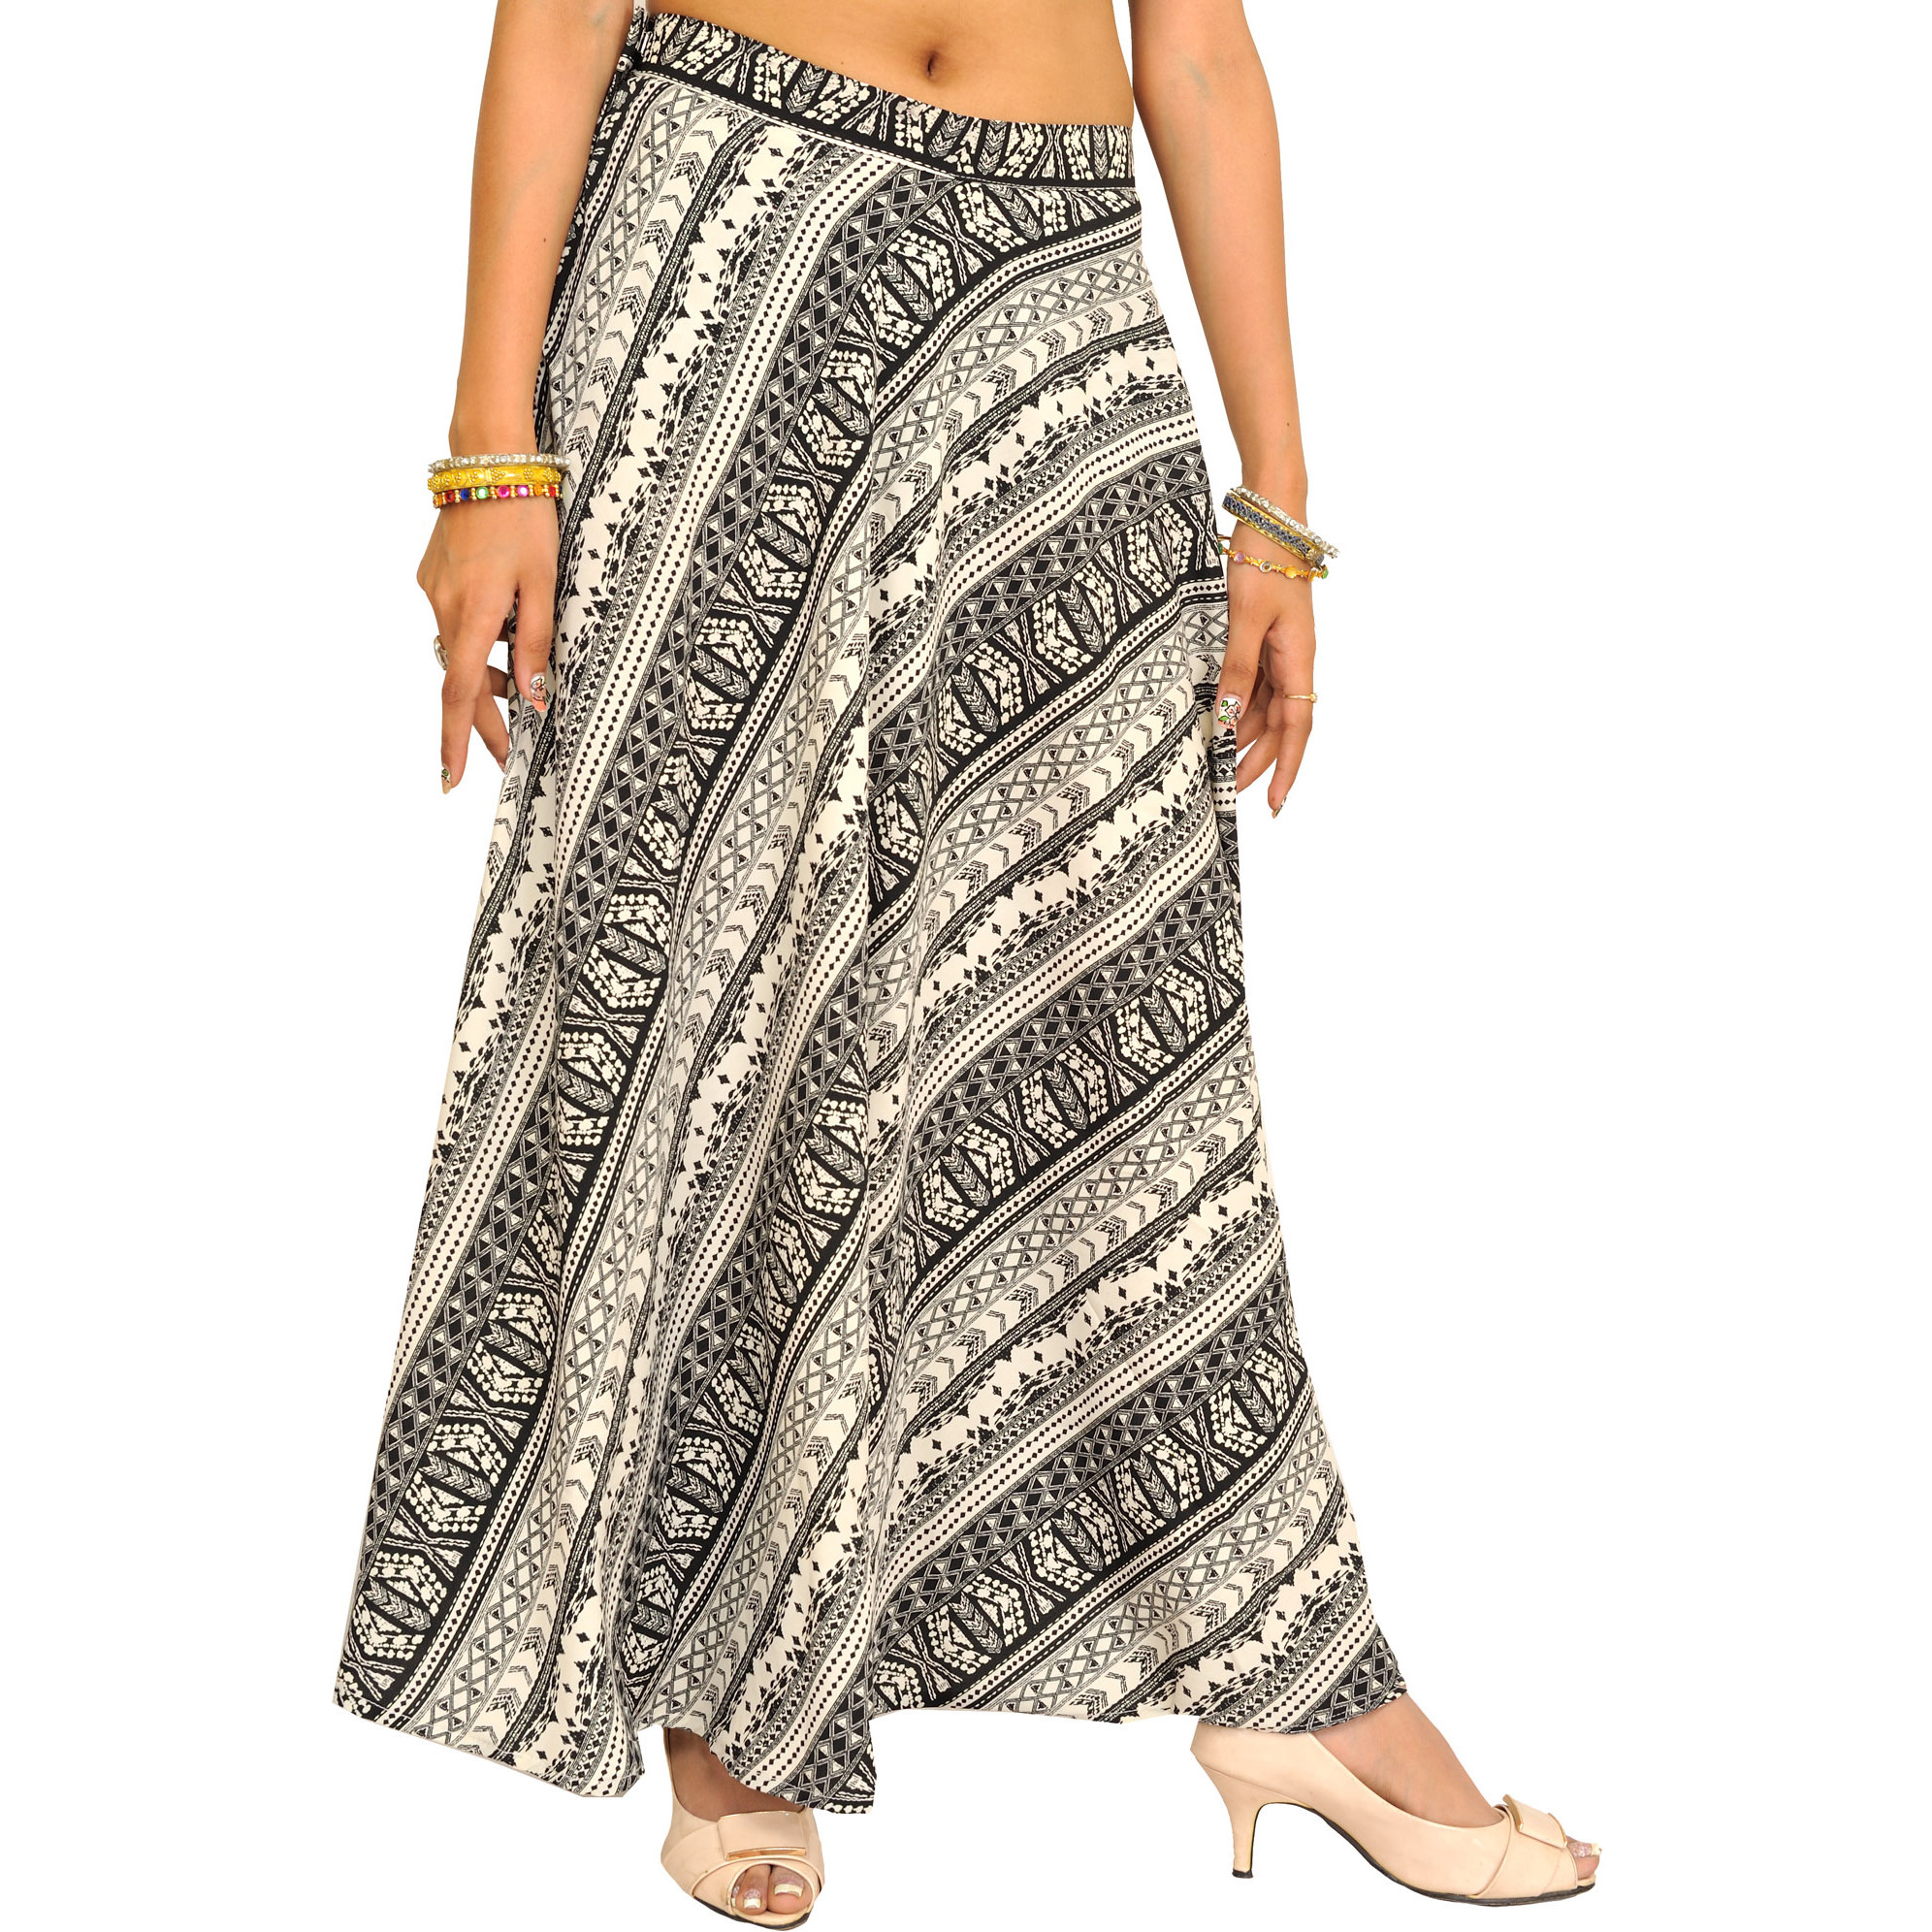 Black and White Printed Long Skirt